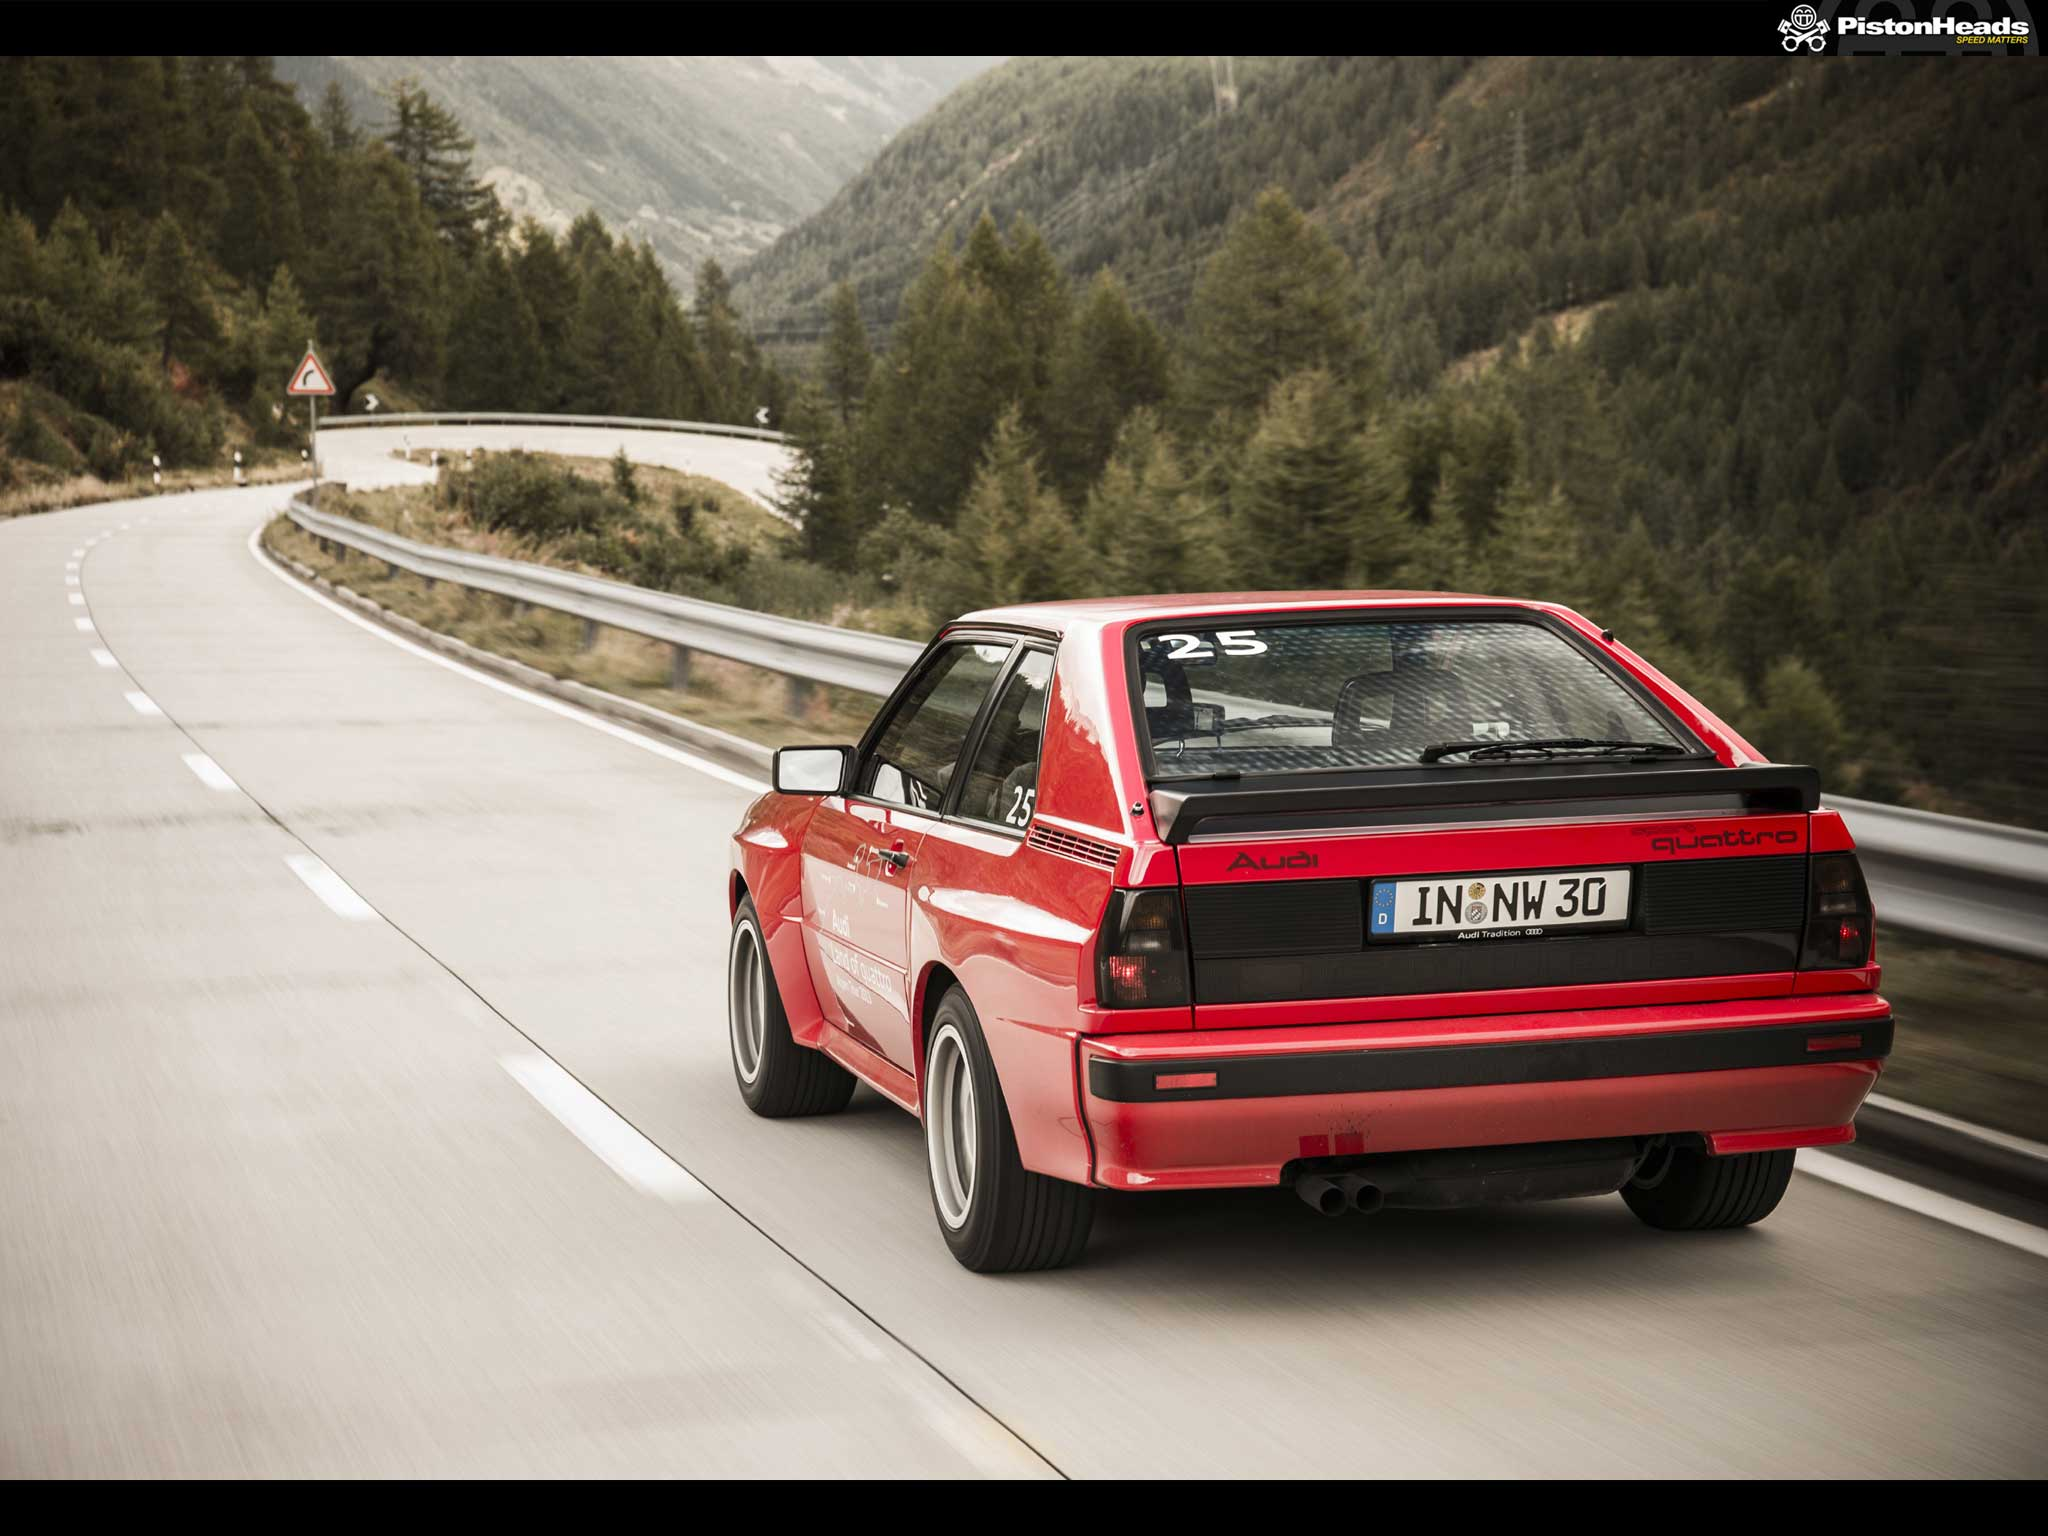 re audi sport quattro pic of the week page 1 general gassing pistonheads. Black Bedroom Furniture Sets. Home Design Ideas